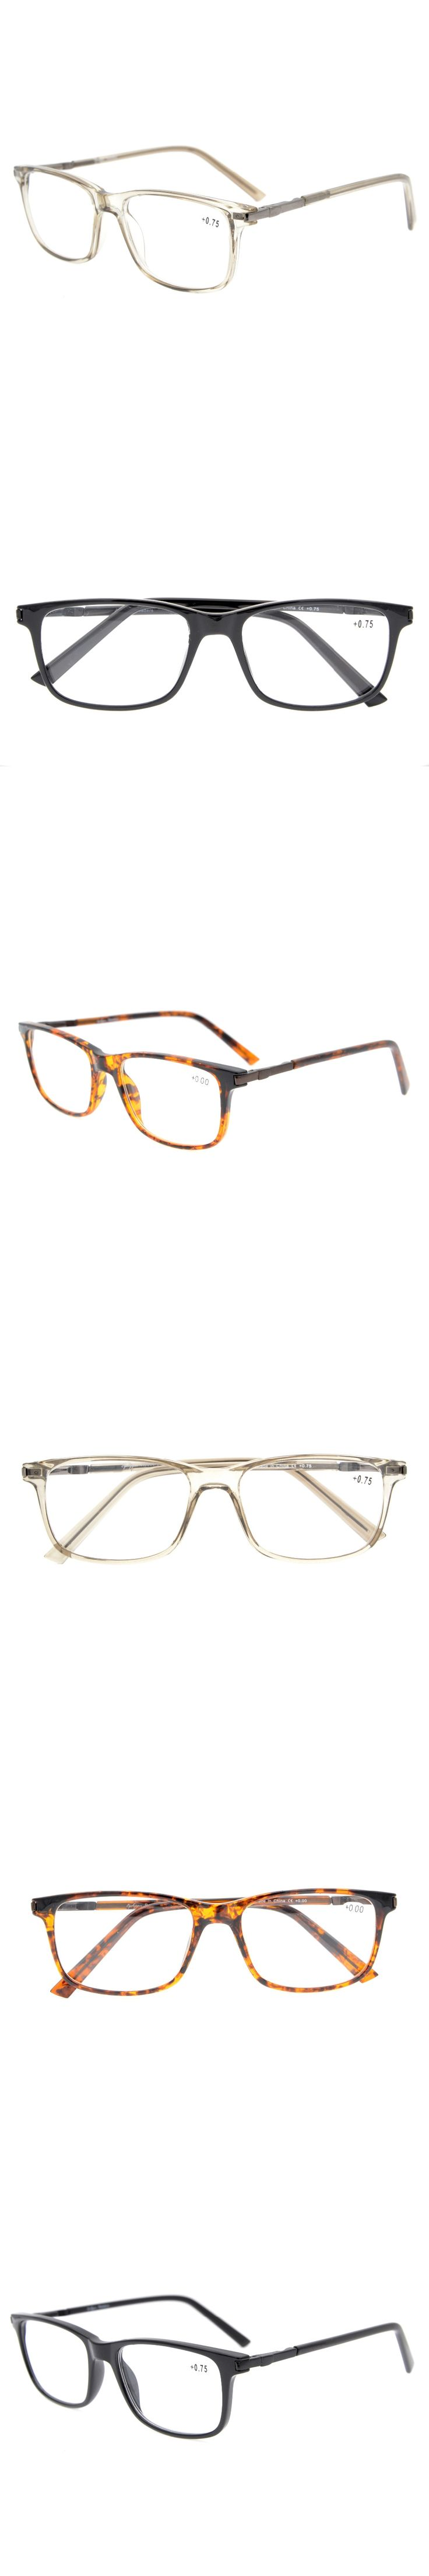 TR010 Eyekepper TR90 Frame Classic Spring Hinges Reading Glasses Stylish Crystal Clear Vision +0.50---+3.00